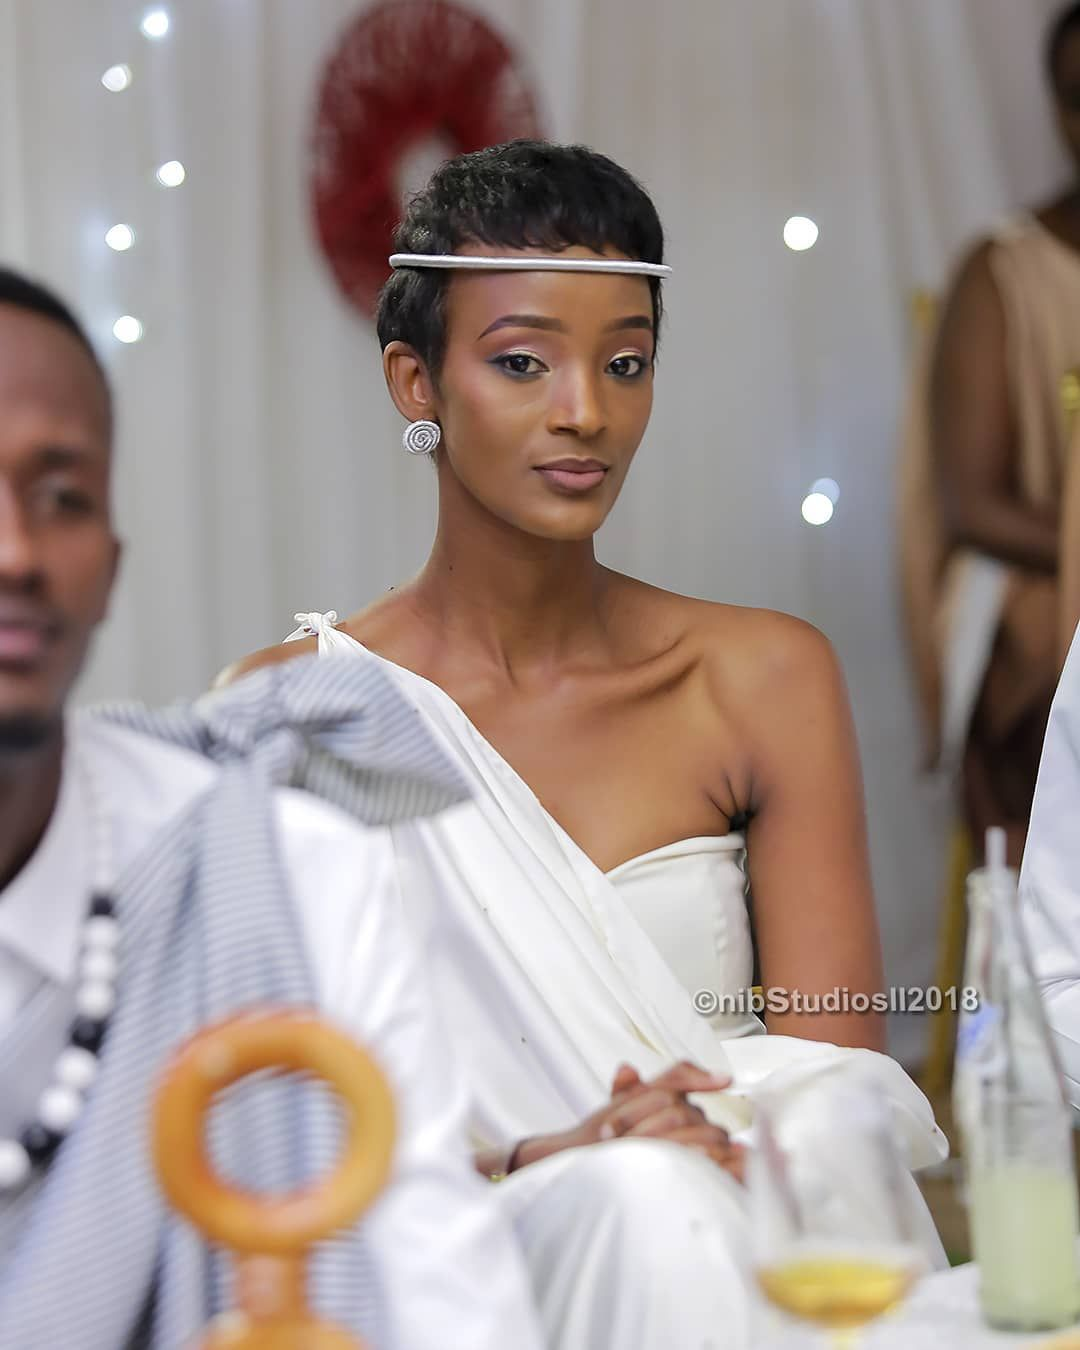 Wedding Hairstyles In Uganda: #Weddingbridesmaids #Rwandaweddings Makeu In 2019